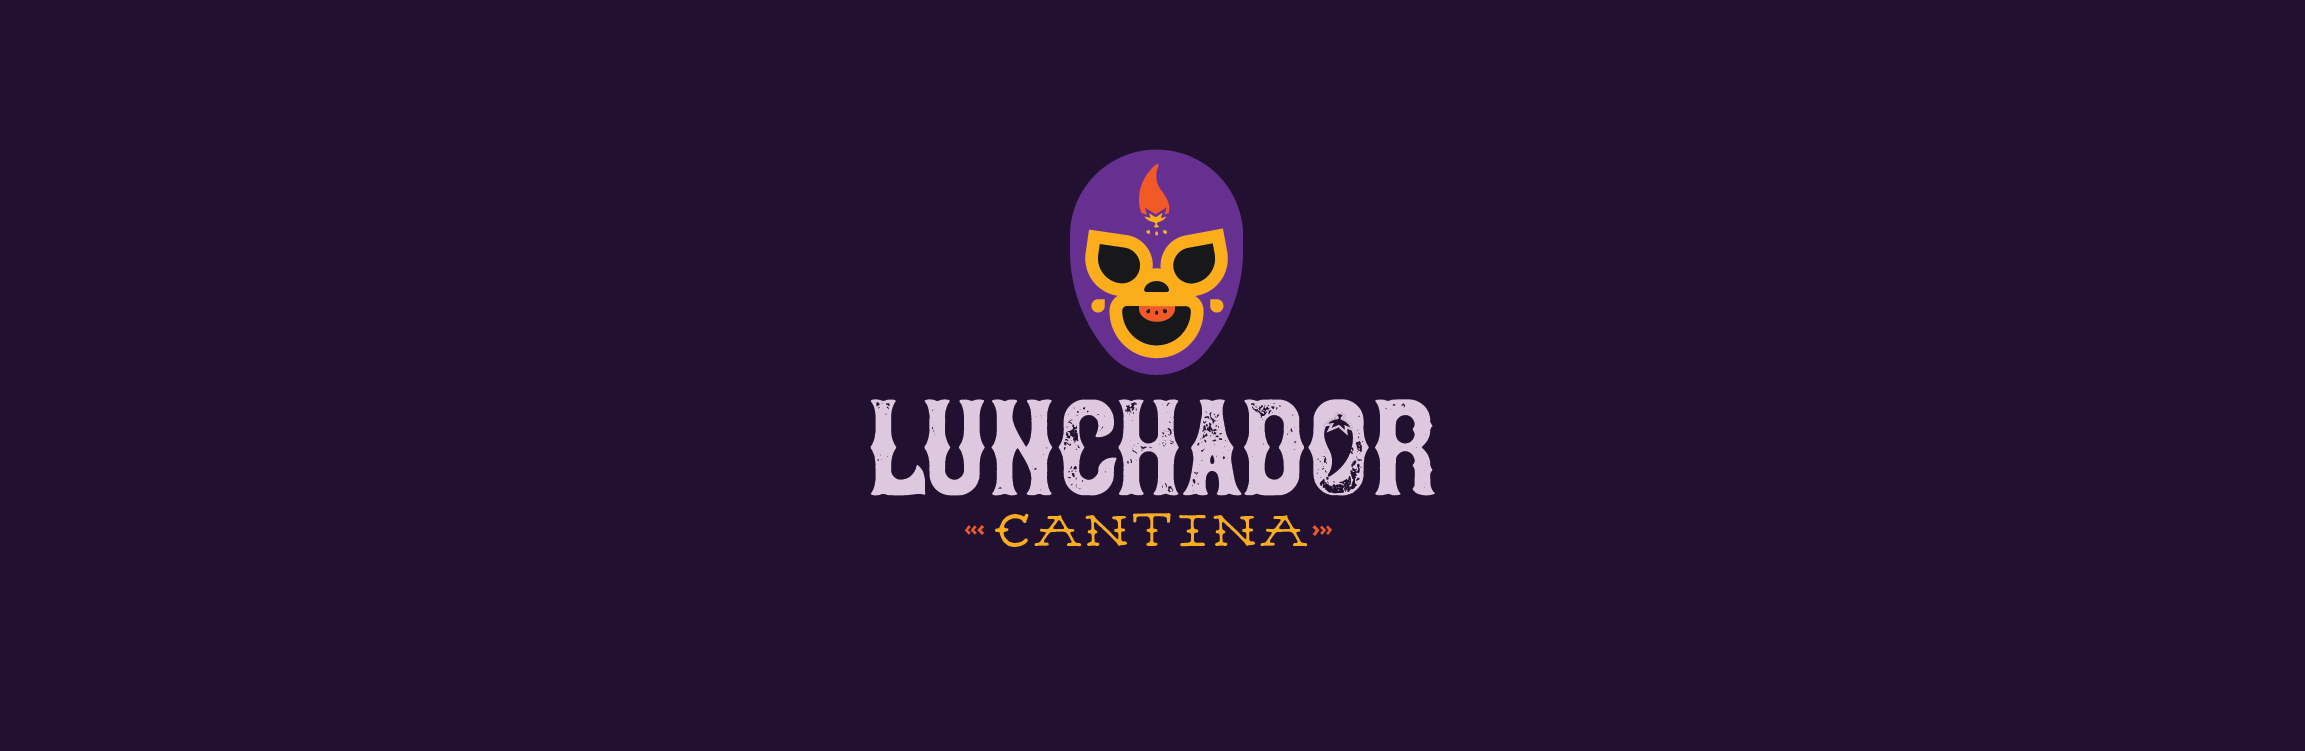 Lunchador-Insta_main 2 copy.jpg